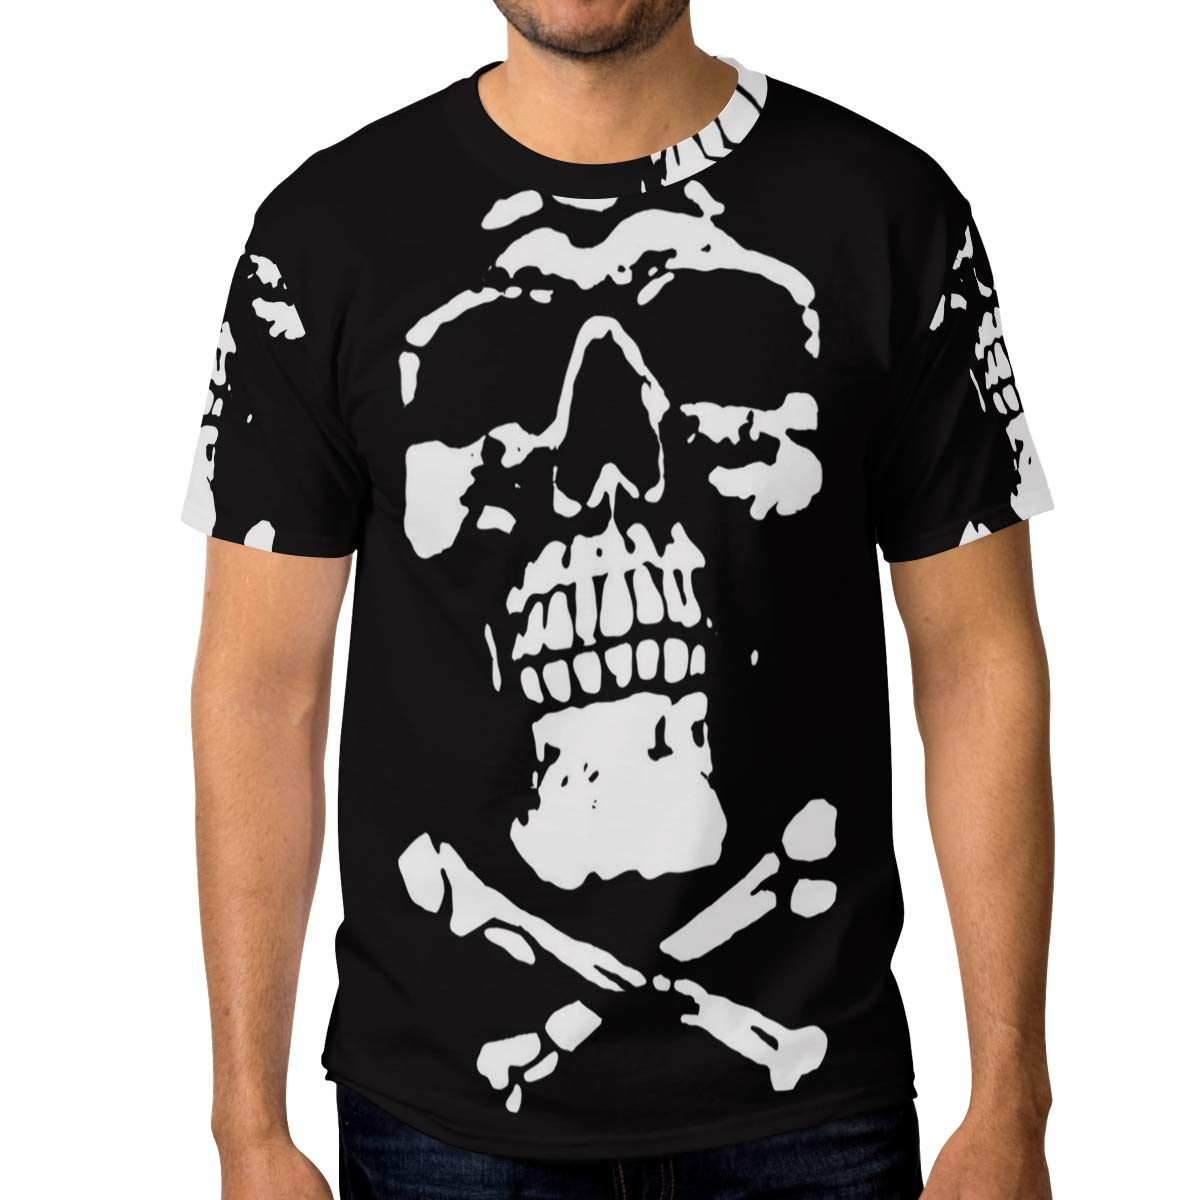 Horatiood Huberyyd Funny Skull Black Scary Mens T Shirts Graphic Funny Body Print Short T-Shirt Unisex Pullover Blouse